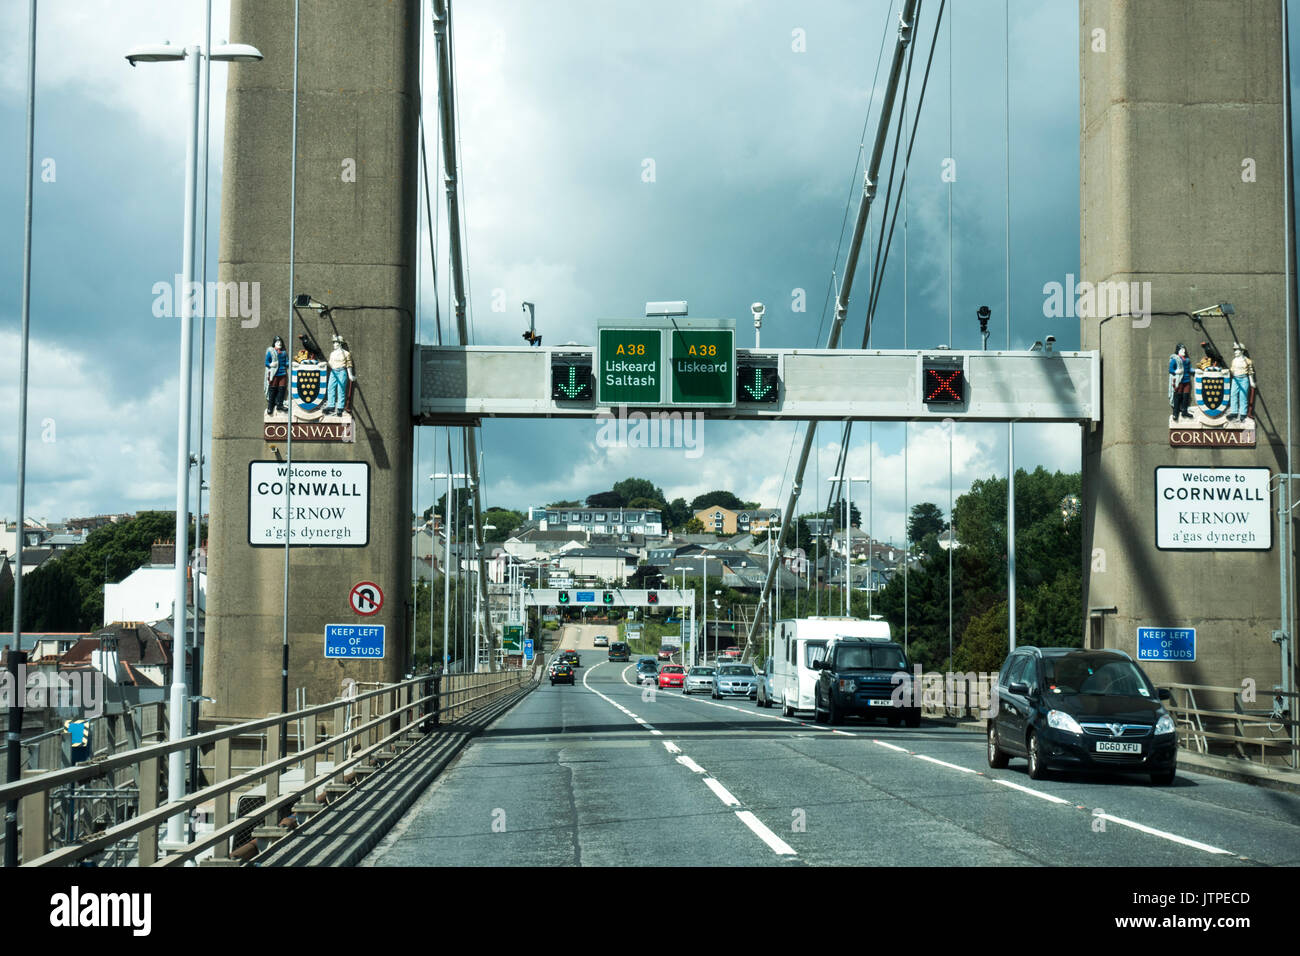 Traffic on the Tamar Bridge between Plymouth, Devon and Saltash, Cornwall (with Welcome to Cornwall sign), England, UK. - Stock Image